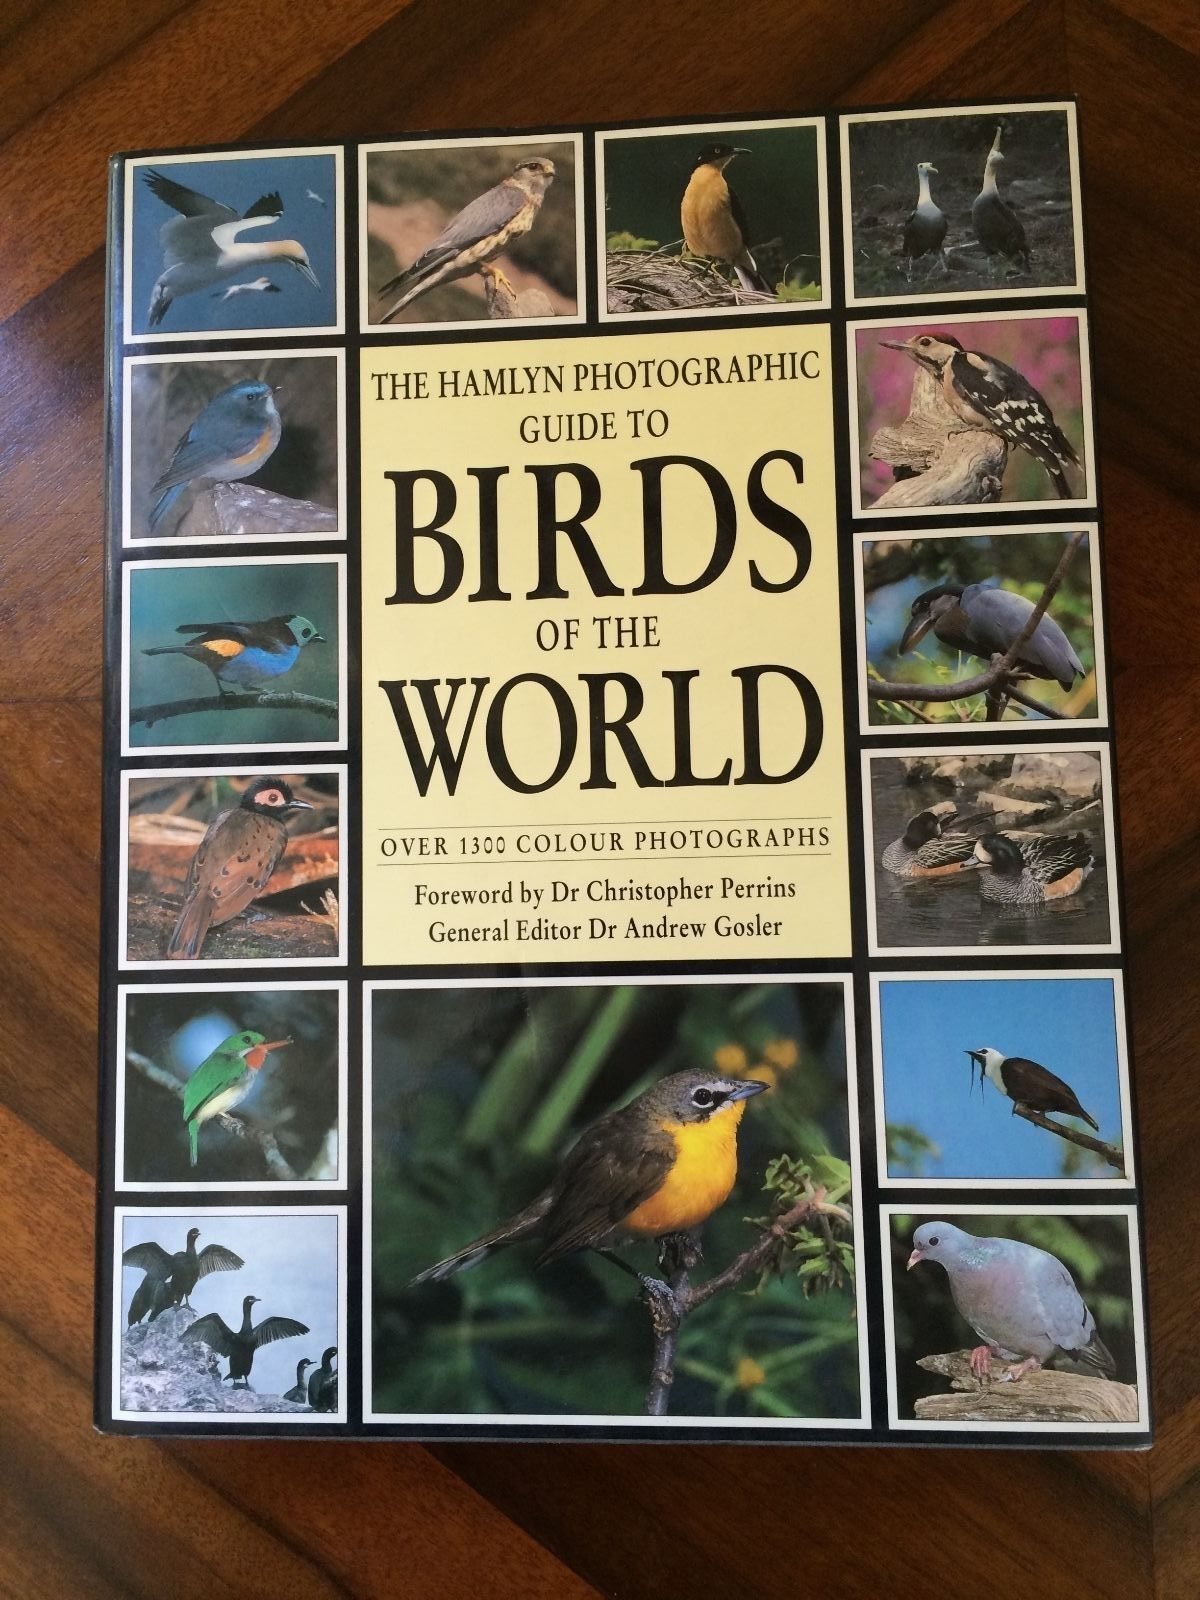 The Hamlyn Photographic Guide To Birds Of The World